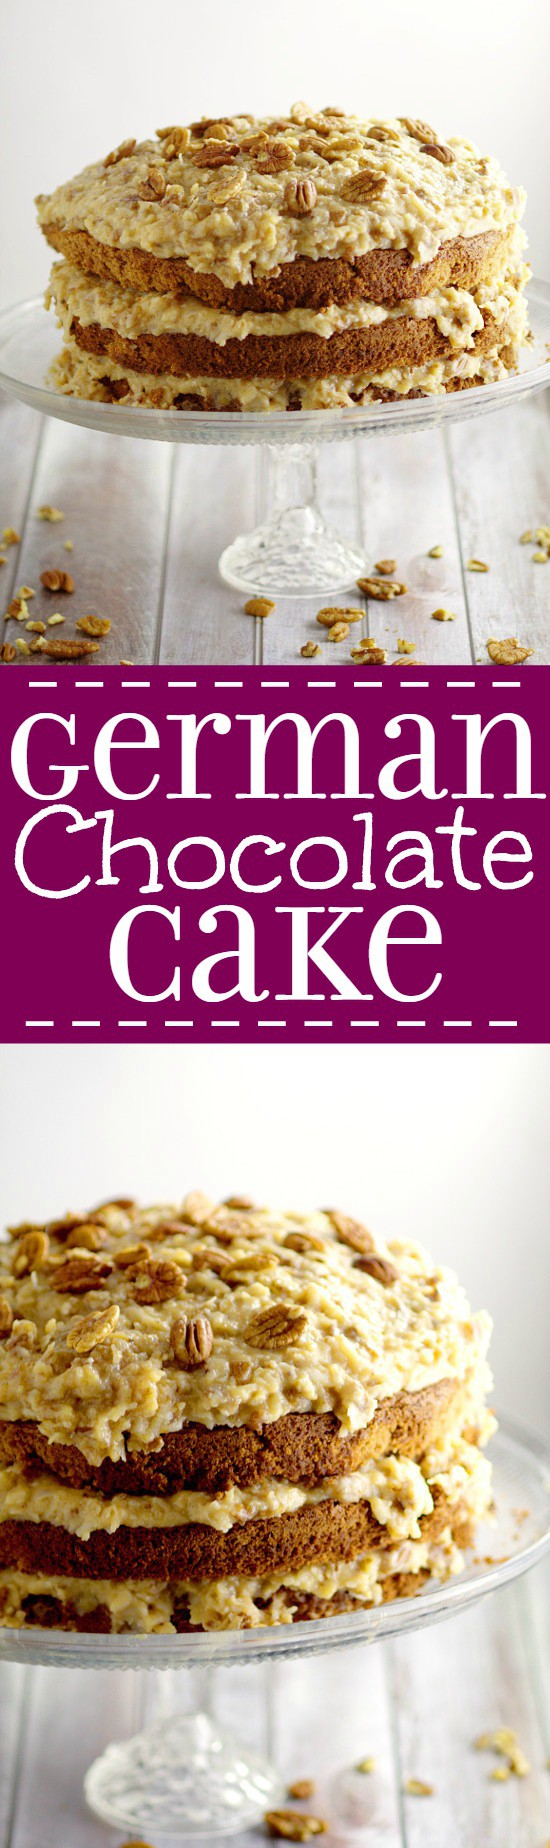 Traditional German Chocolate Cake | The Gracious Wife